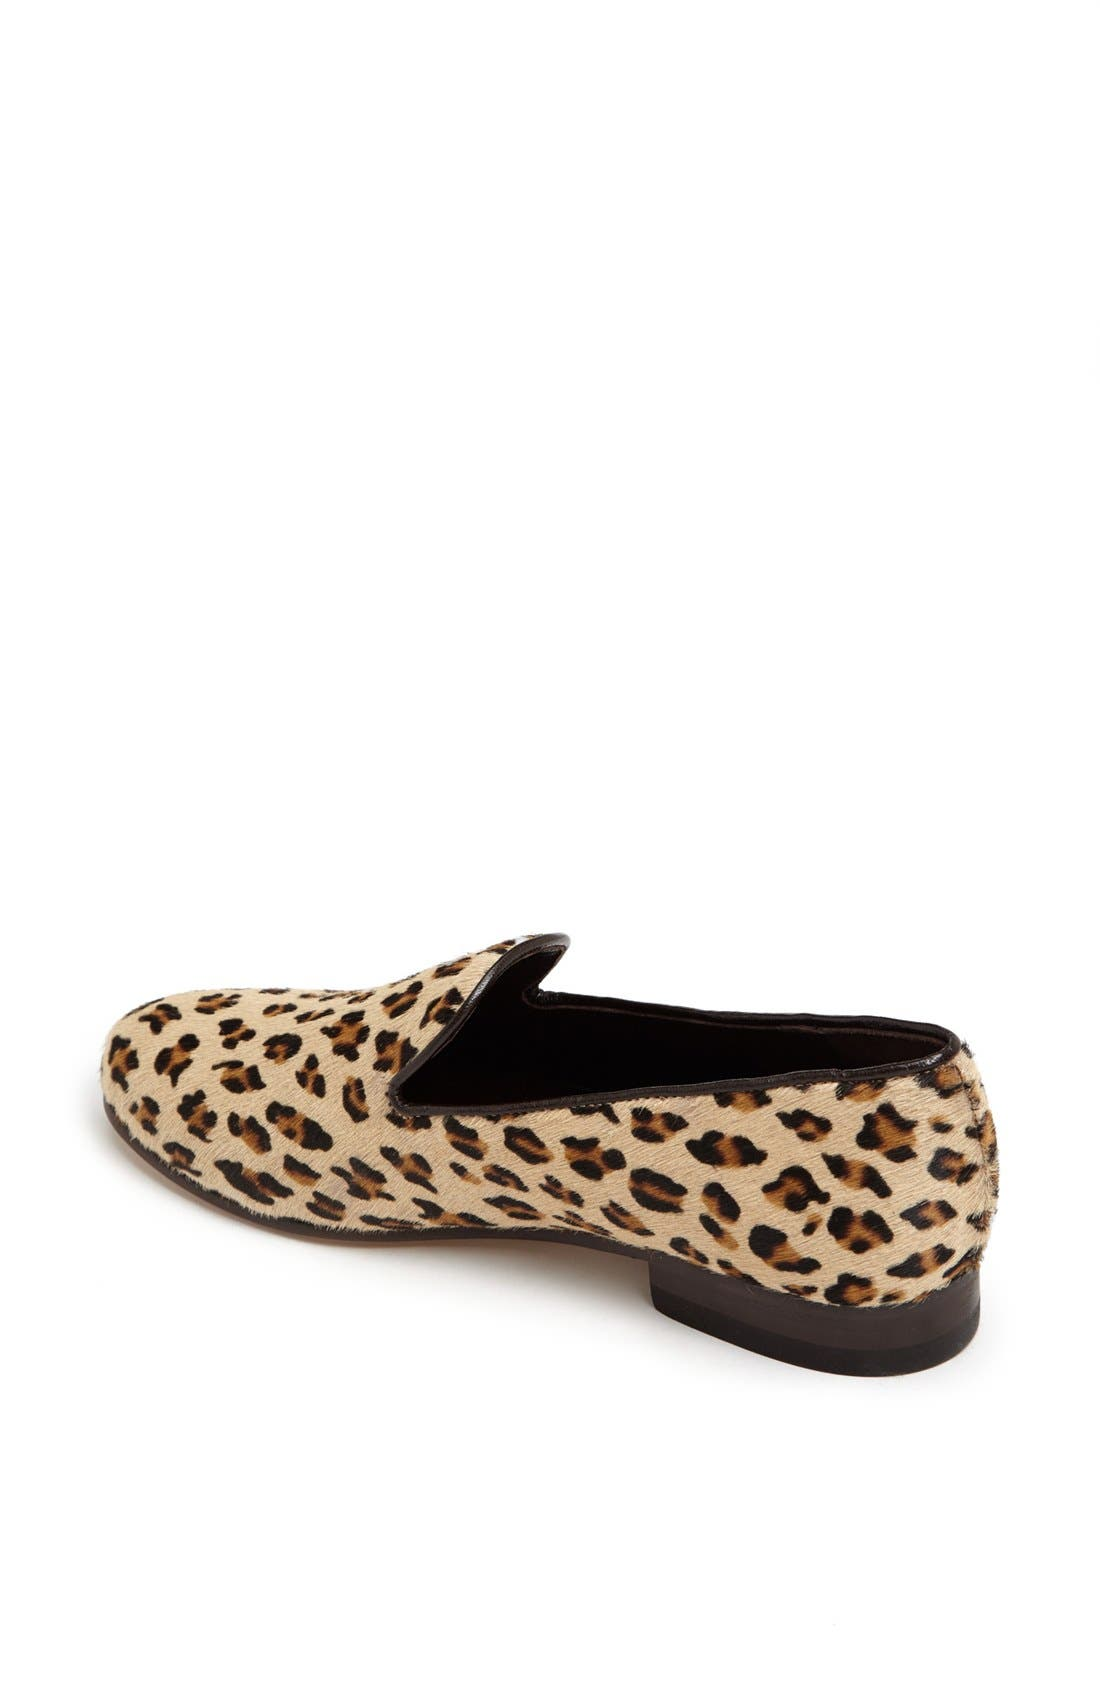 Alternate Image 2  - CB Made in Italy Leopard Print Slipper Flat